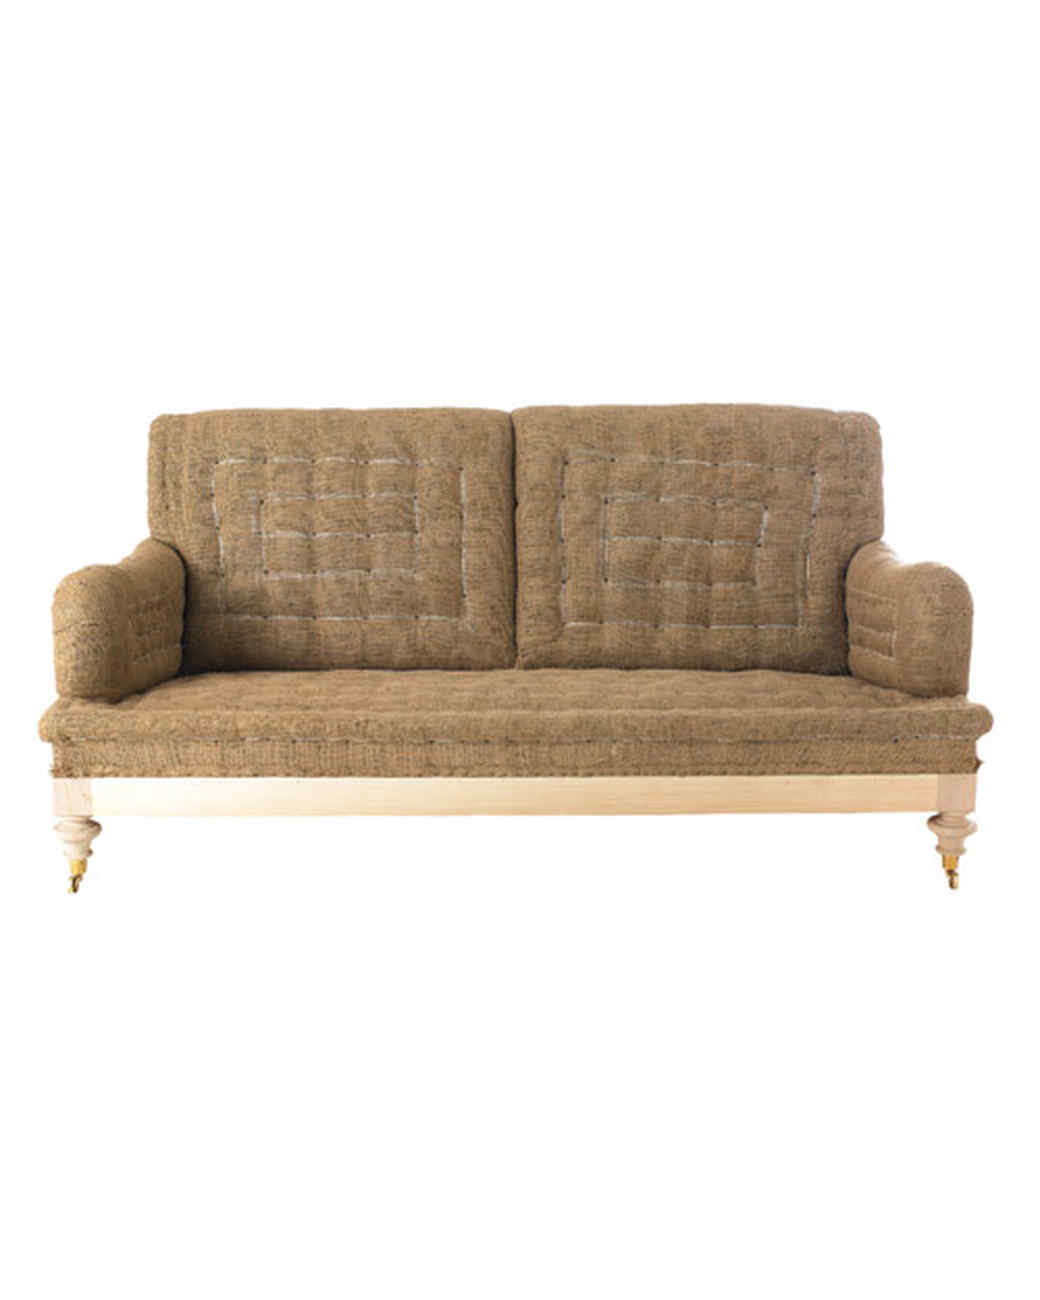 feather filled sofas second hand white leather corner sofa bed 13 steps to a stunning makeover martha stewart